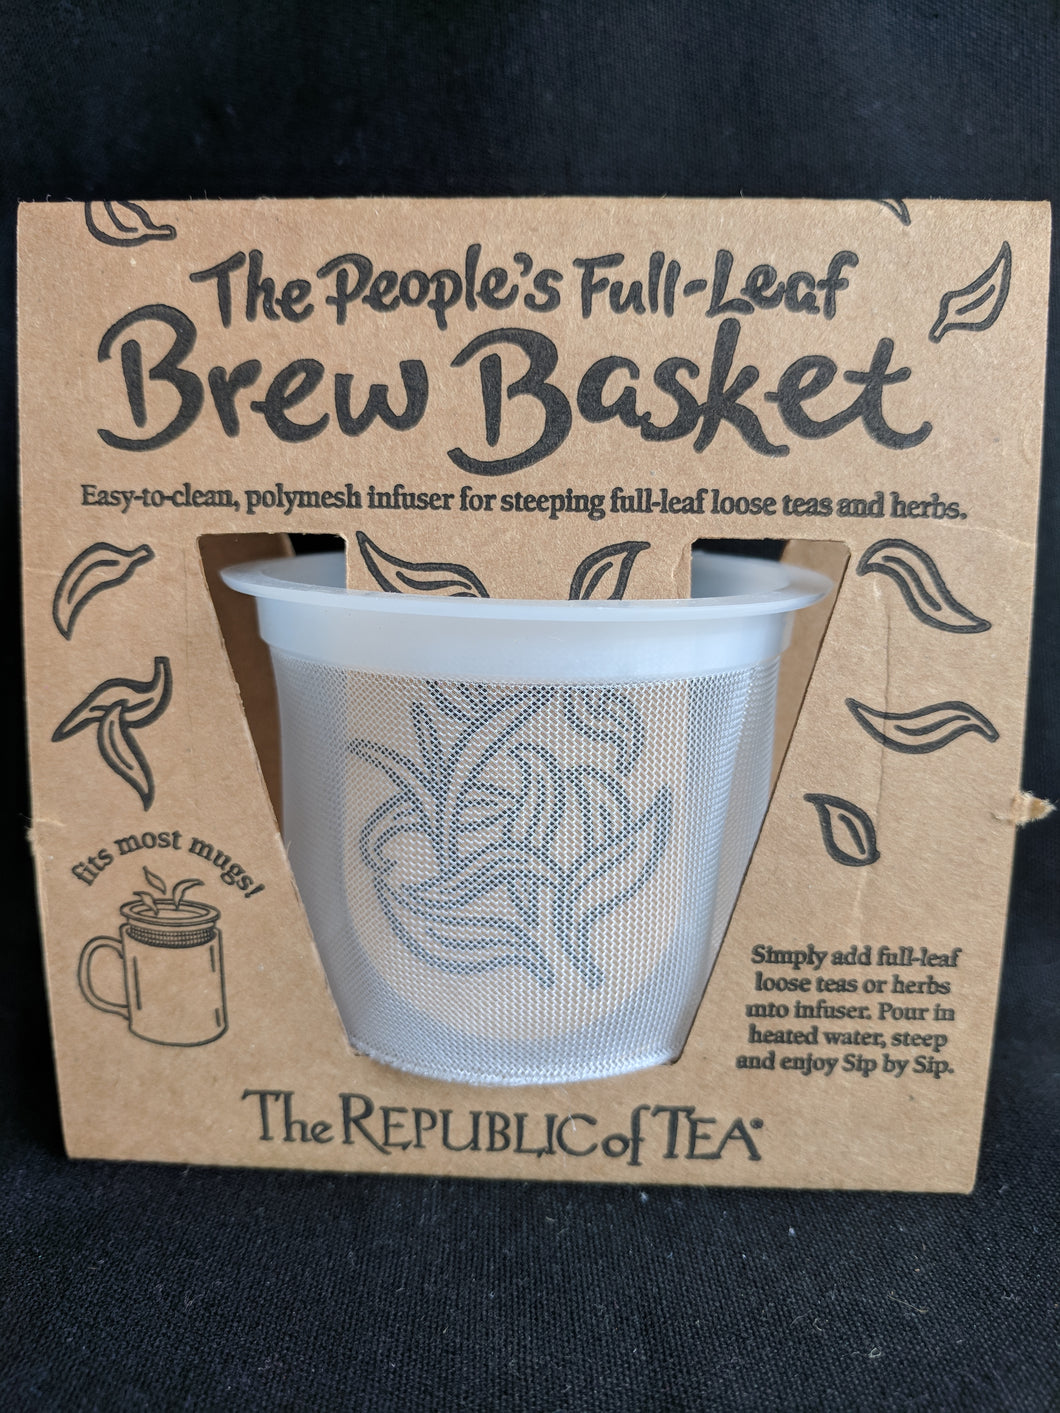 The People's Full Leaf Brew Basket